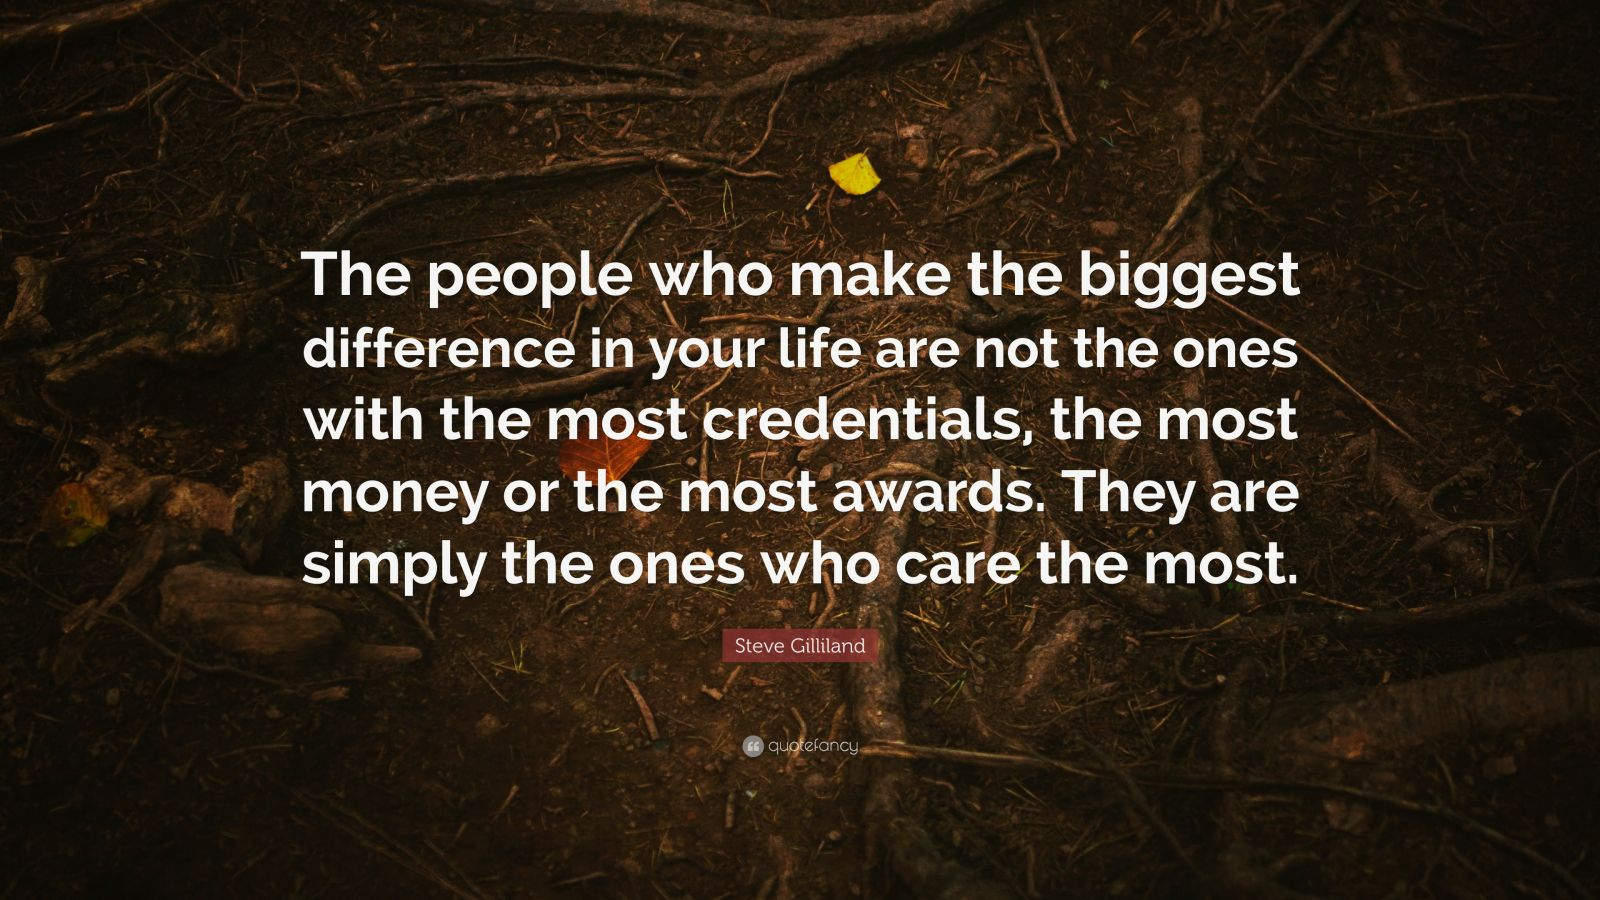 """Steve Gilliland Quote: """"The people who make the biggest difference in your life are not the ones with the most credentials, the most money or the most awards. They are simply the ones who care the most."""""""